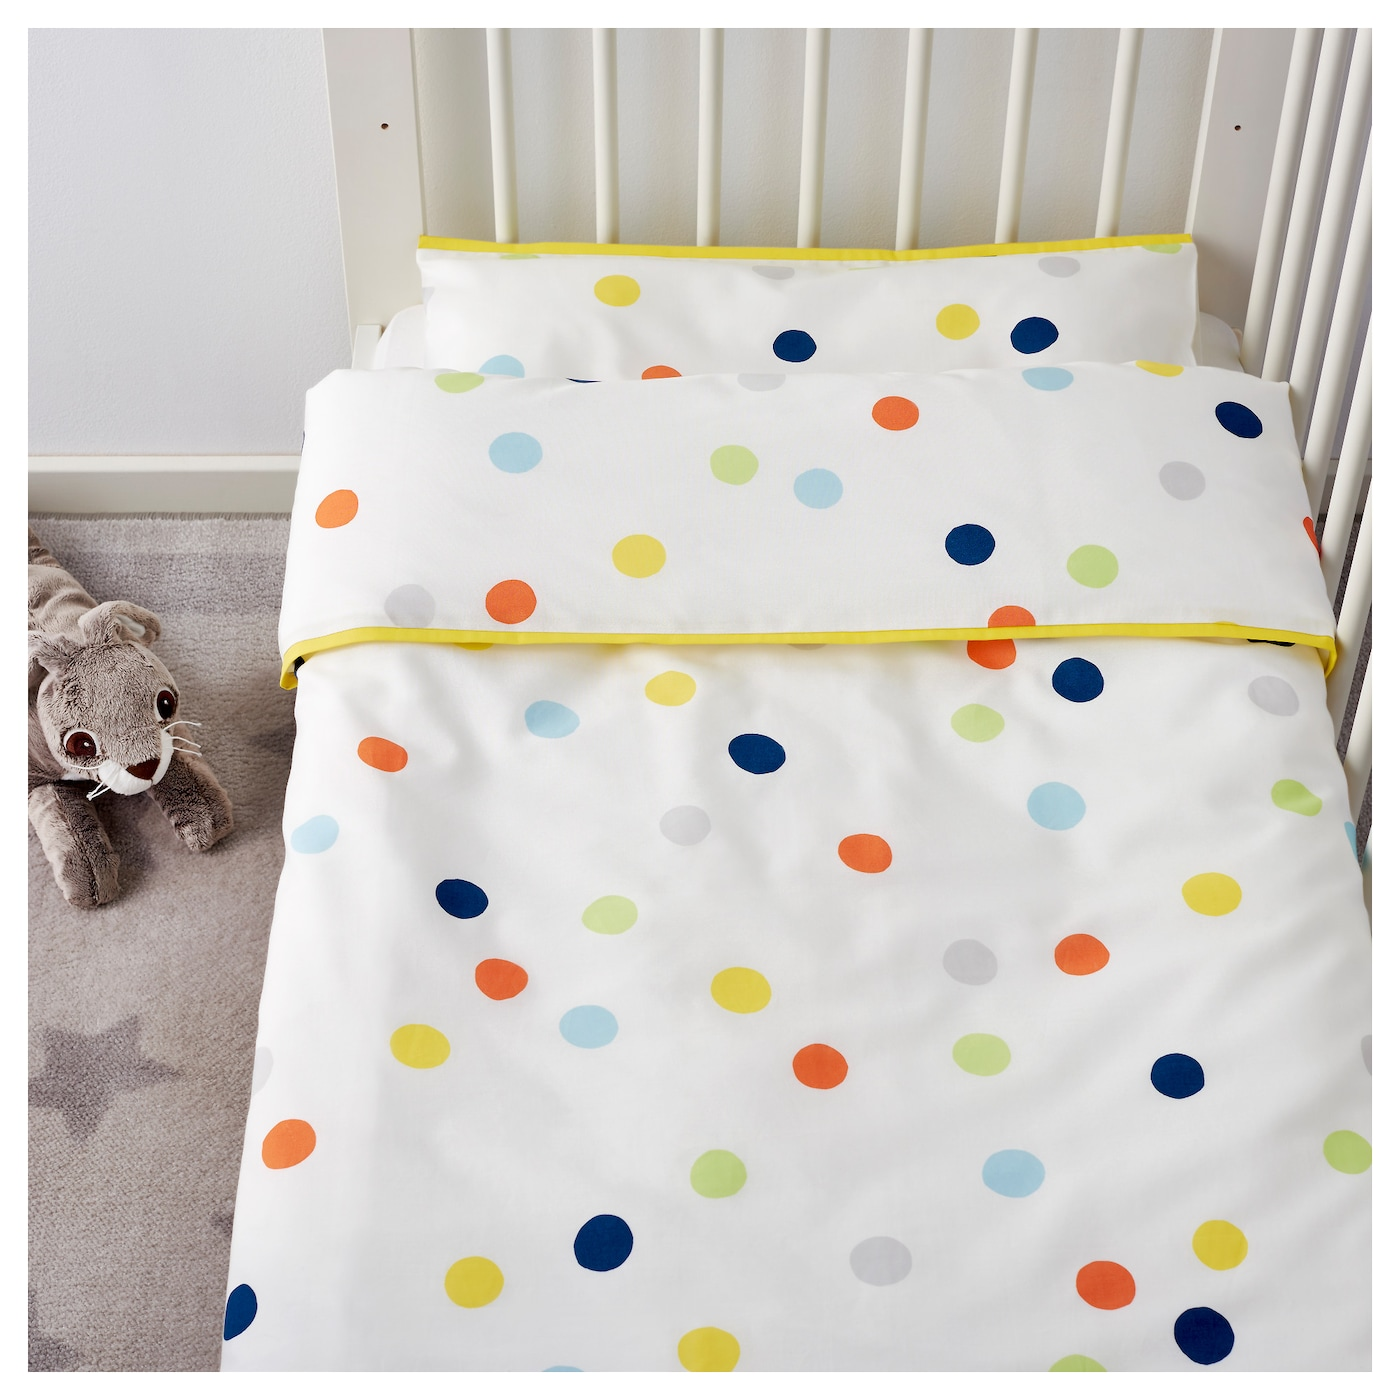 IKEA DRÖMLAND quilt cover/pillowcase for cot Easy to keep clean; machine wash hot (60°C).